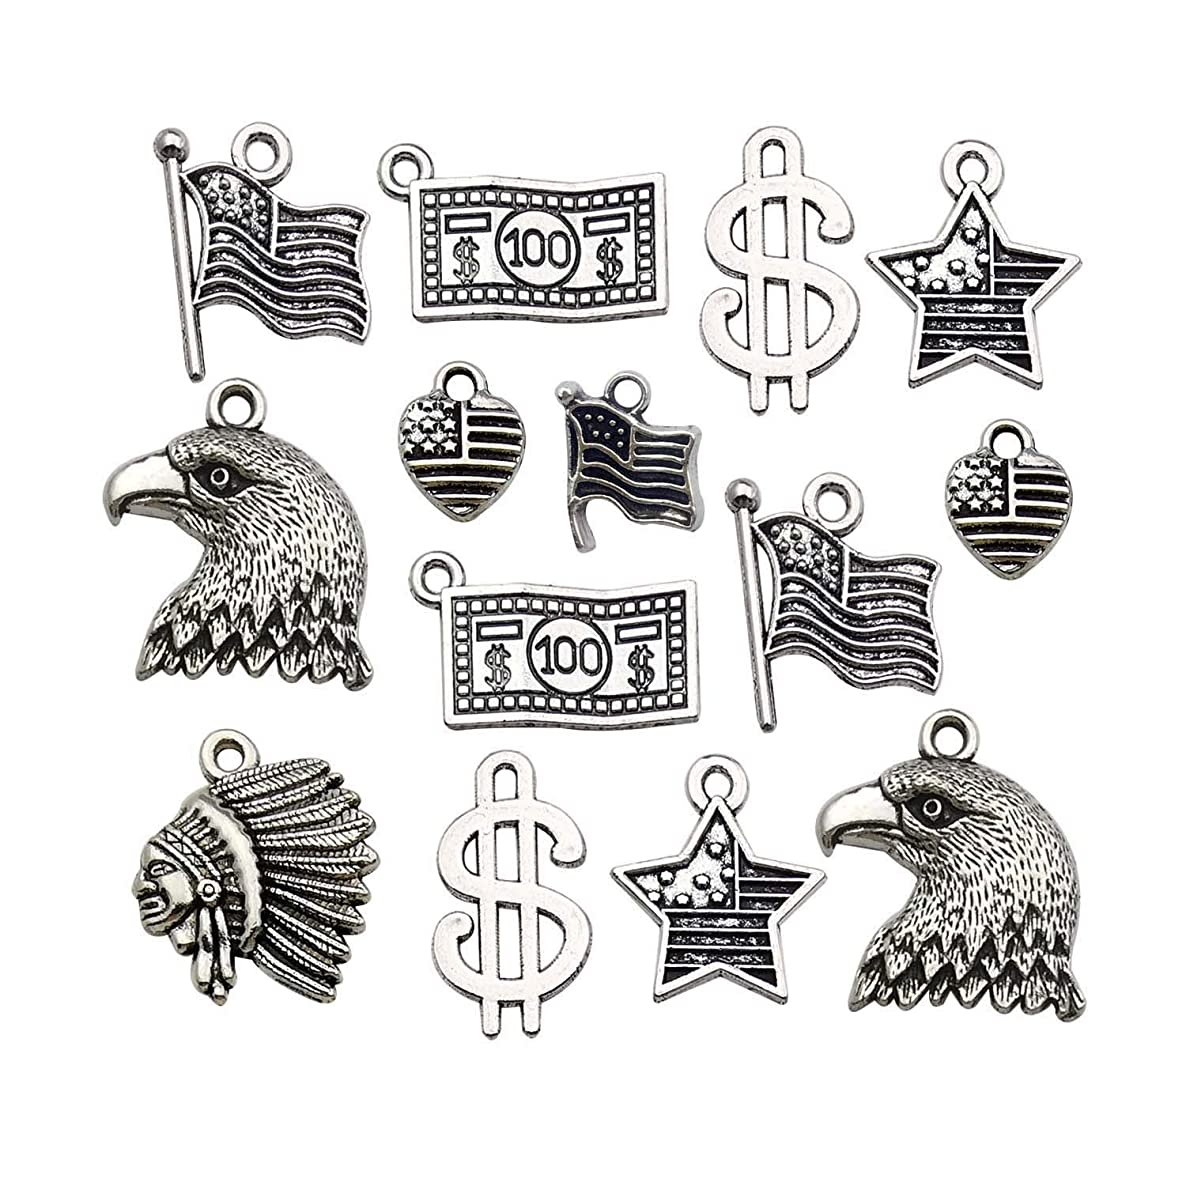 80pcs America Theme Charms Collection Craft Supplies Antique Silver Native American Flag Dollar Charm 4th of July USA Patriot Charms Pendants for Jewelry Making Crafting Findings M261